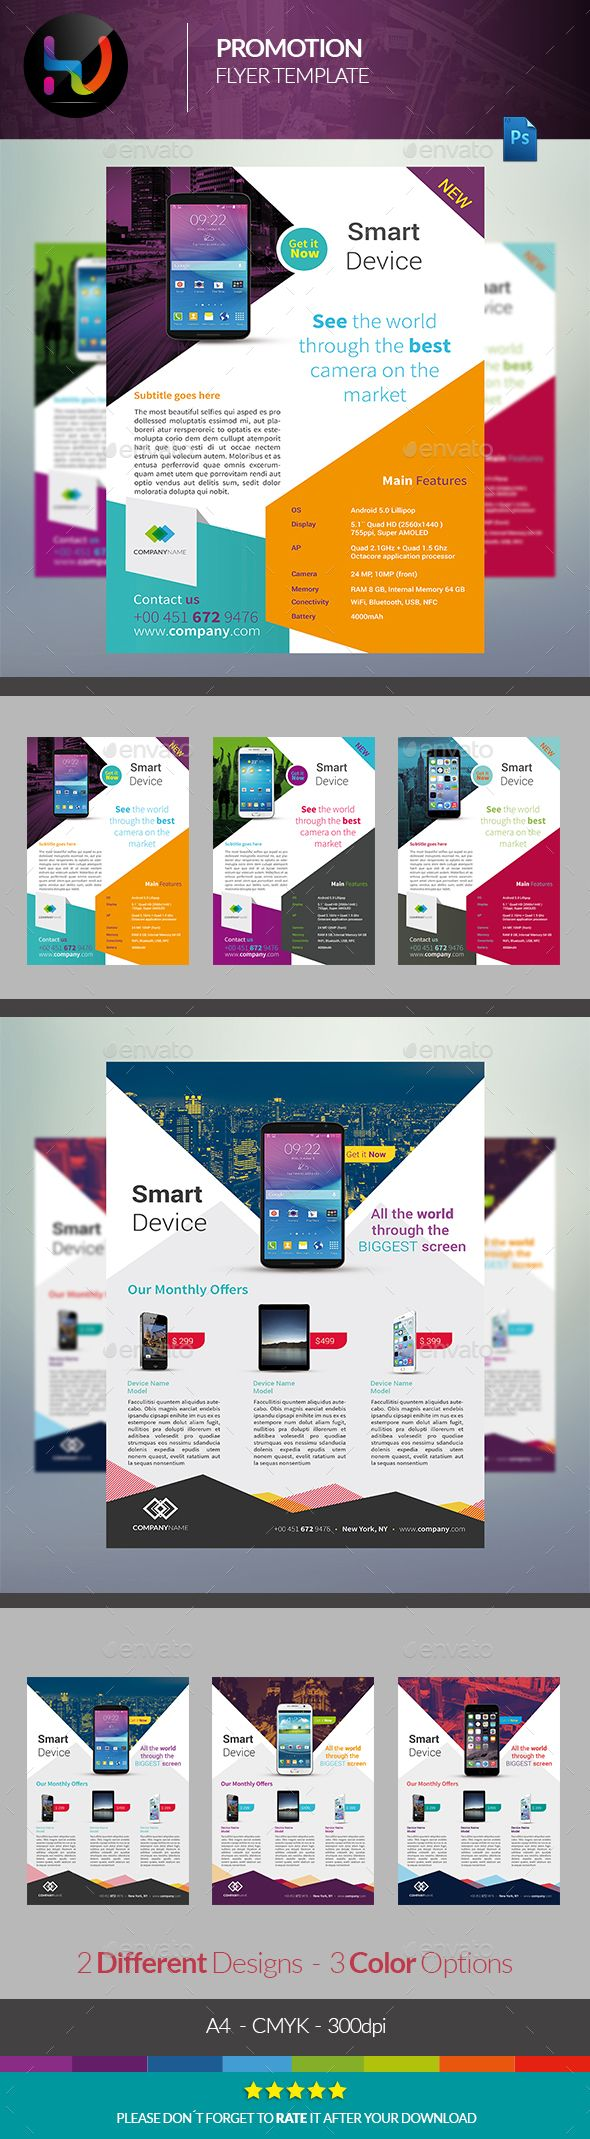 product promotion flyer template psd design download httpgraphicrivernetitemproduct promotion flyer13113269refksioks